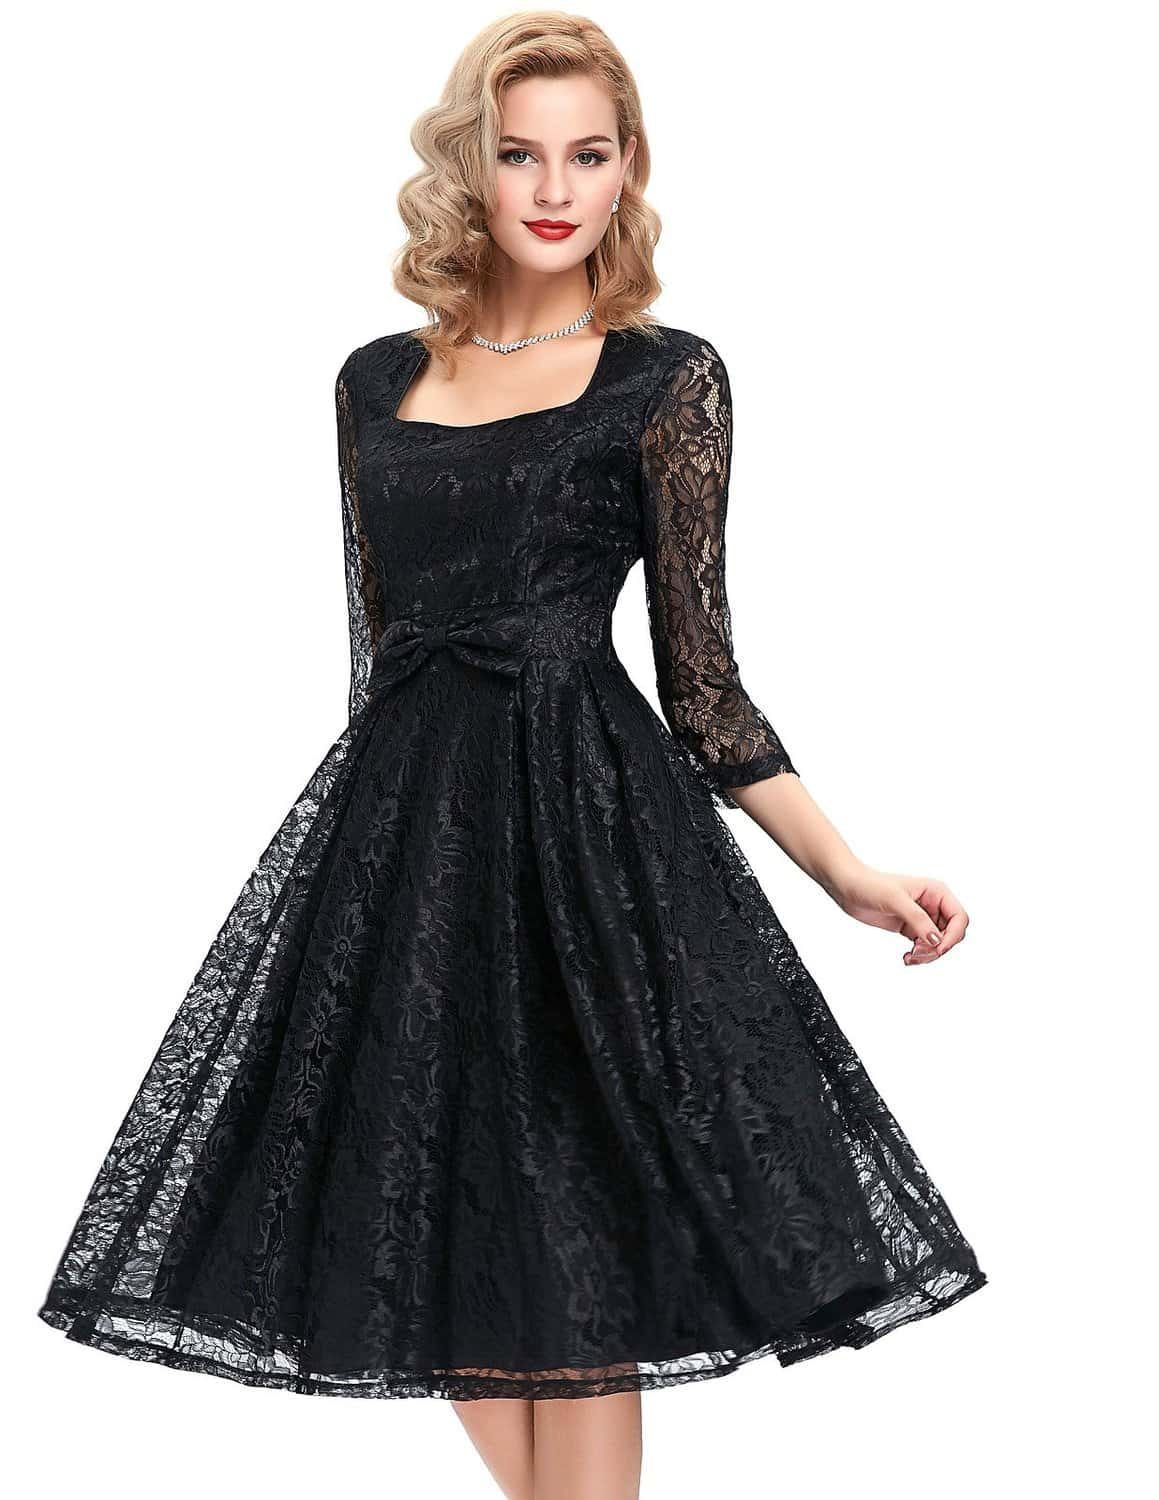 rita-black-lace-party-dress